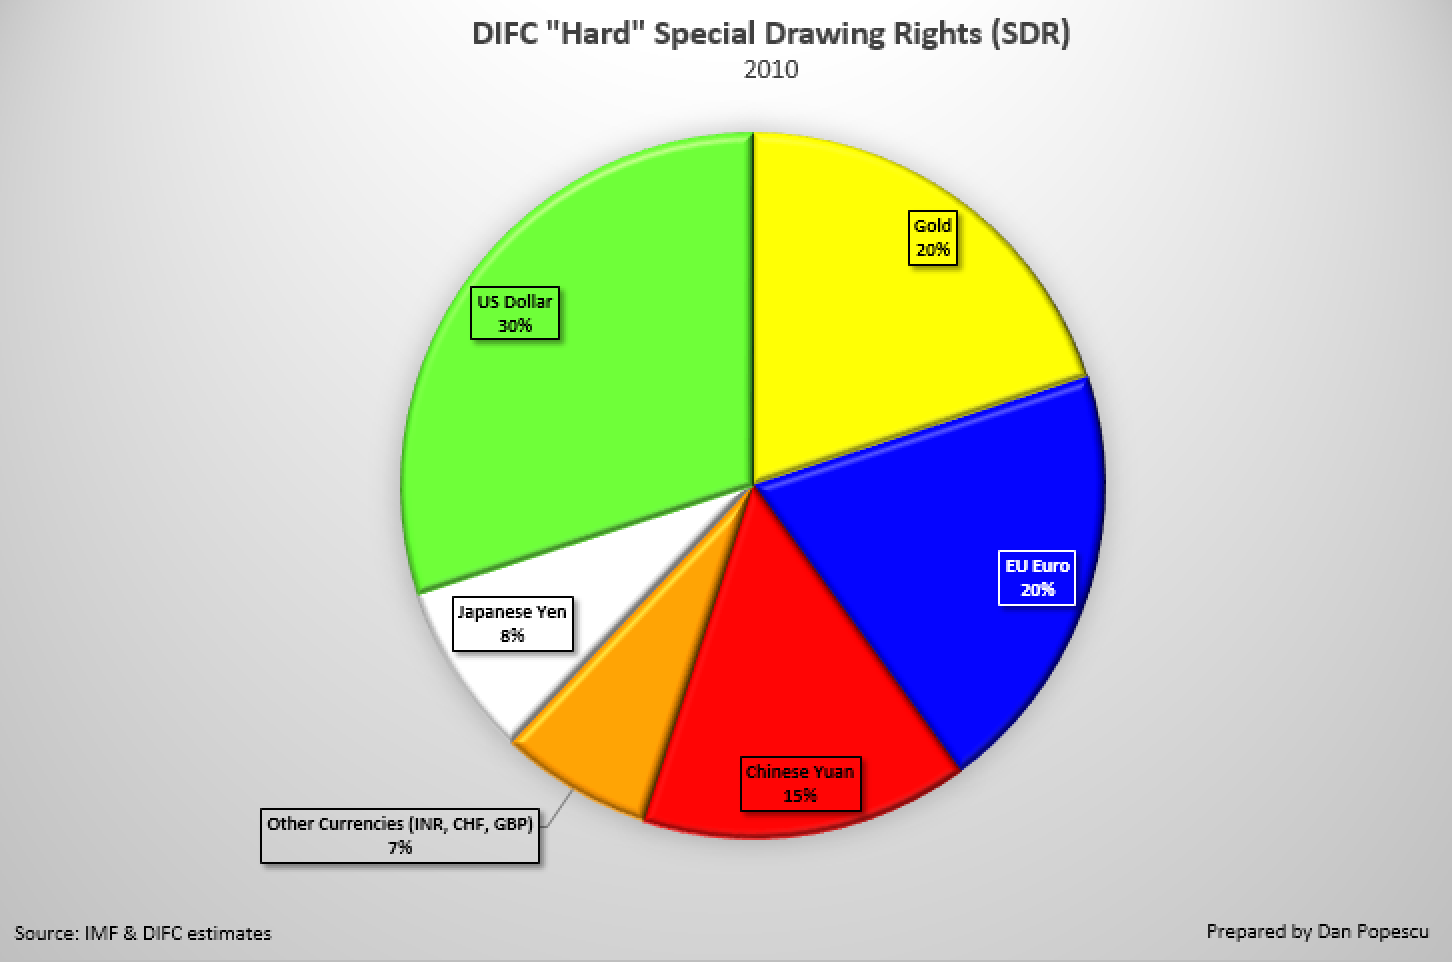 DIFC  Special Drawing Rights (SDR)